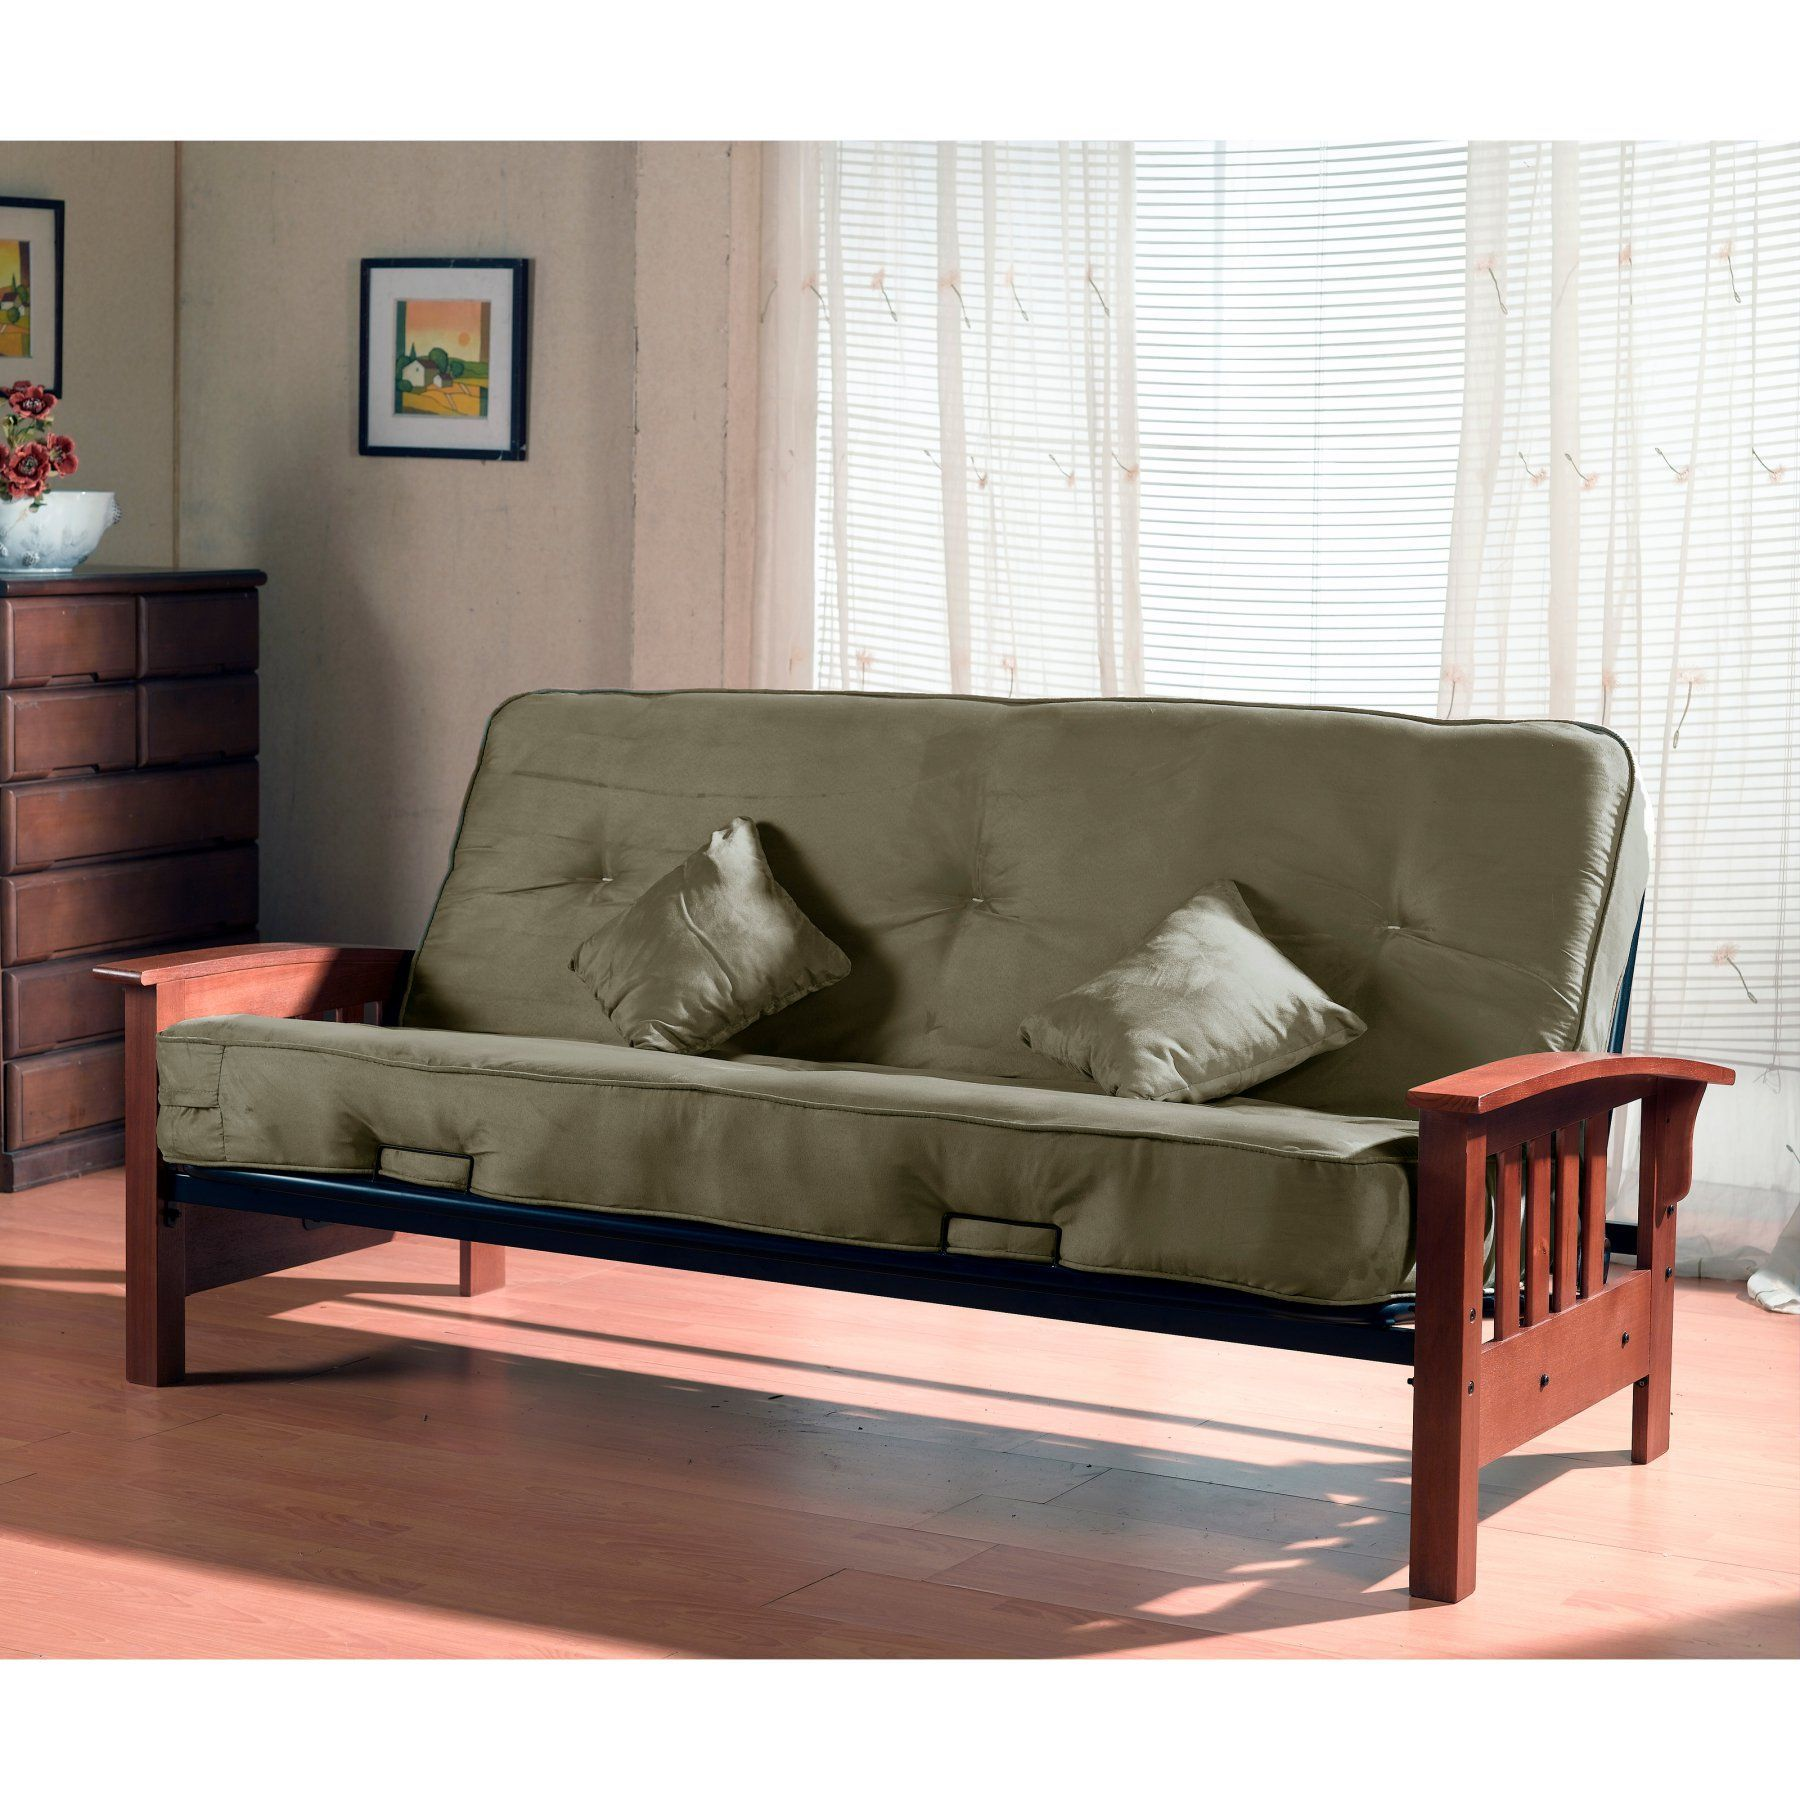 Medium image of pocket coil futon mattress and frame   10735